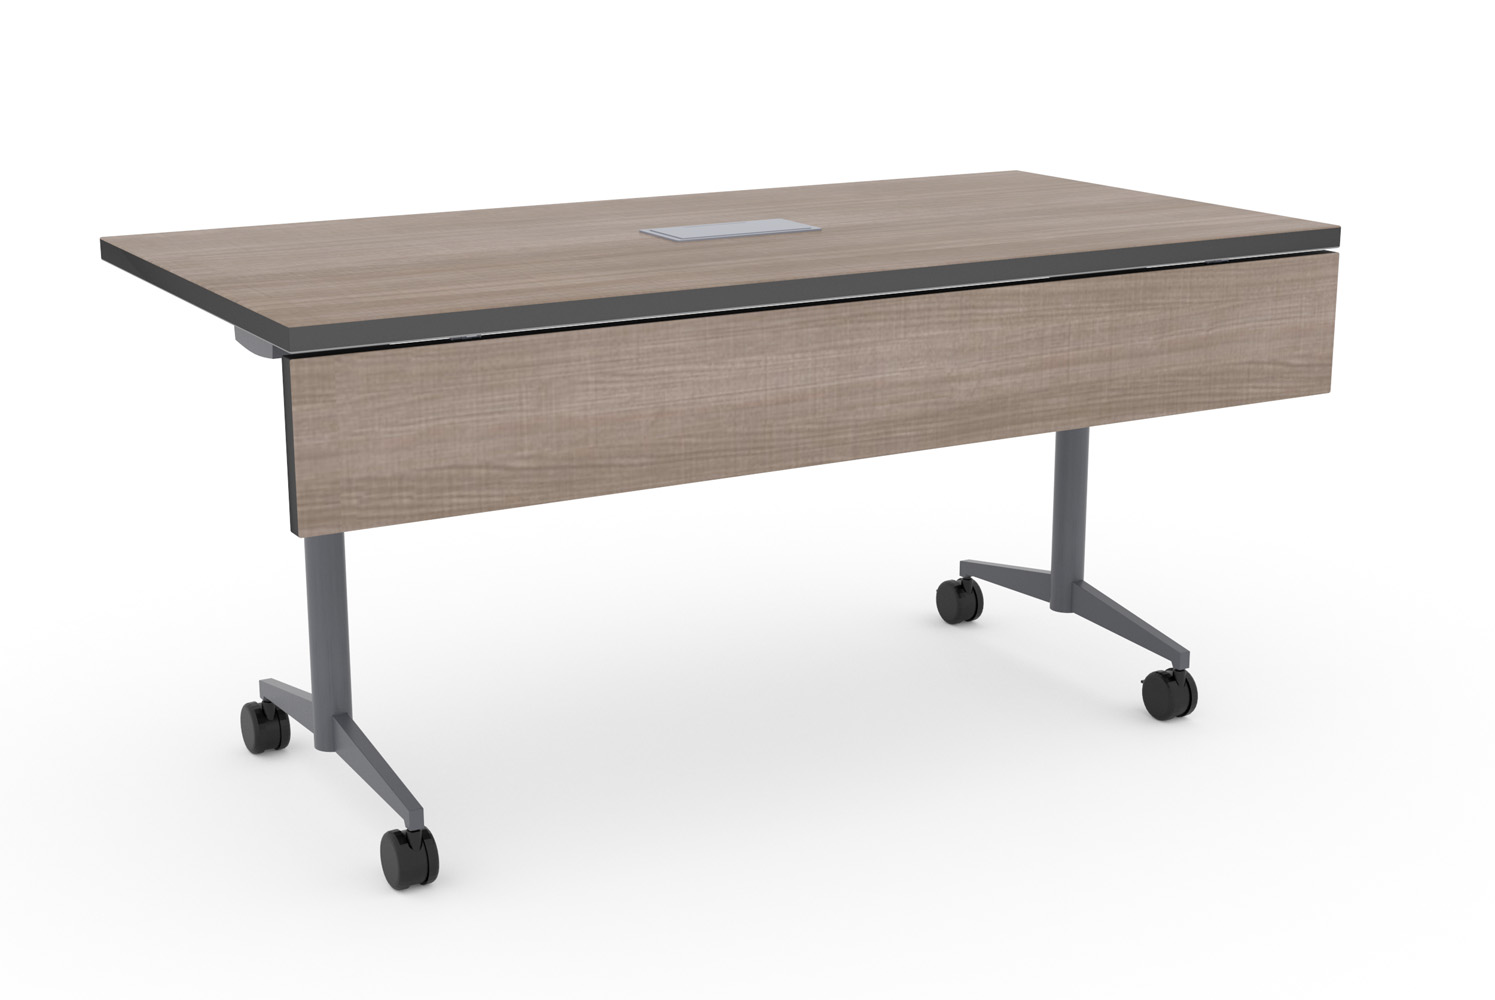 table furniture accesskeyid disposition category training room office alloworigin